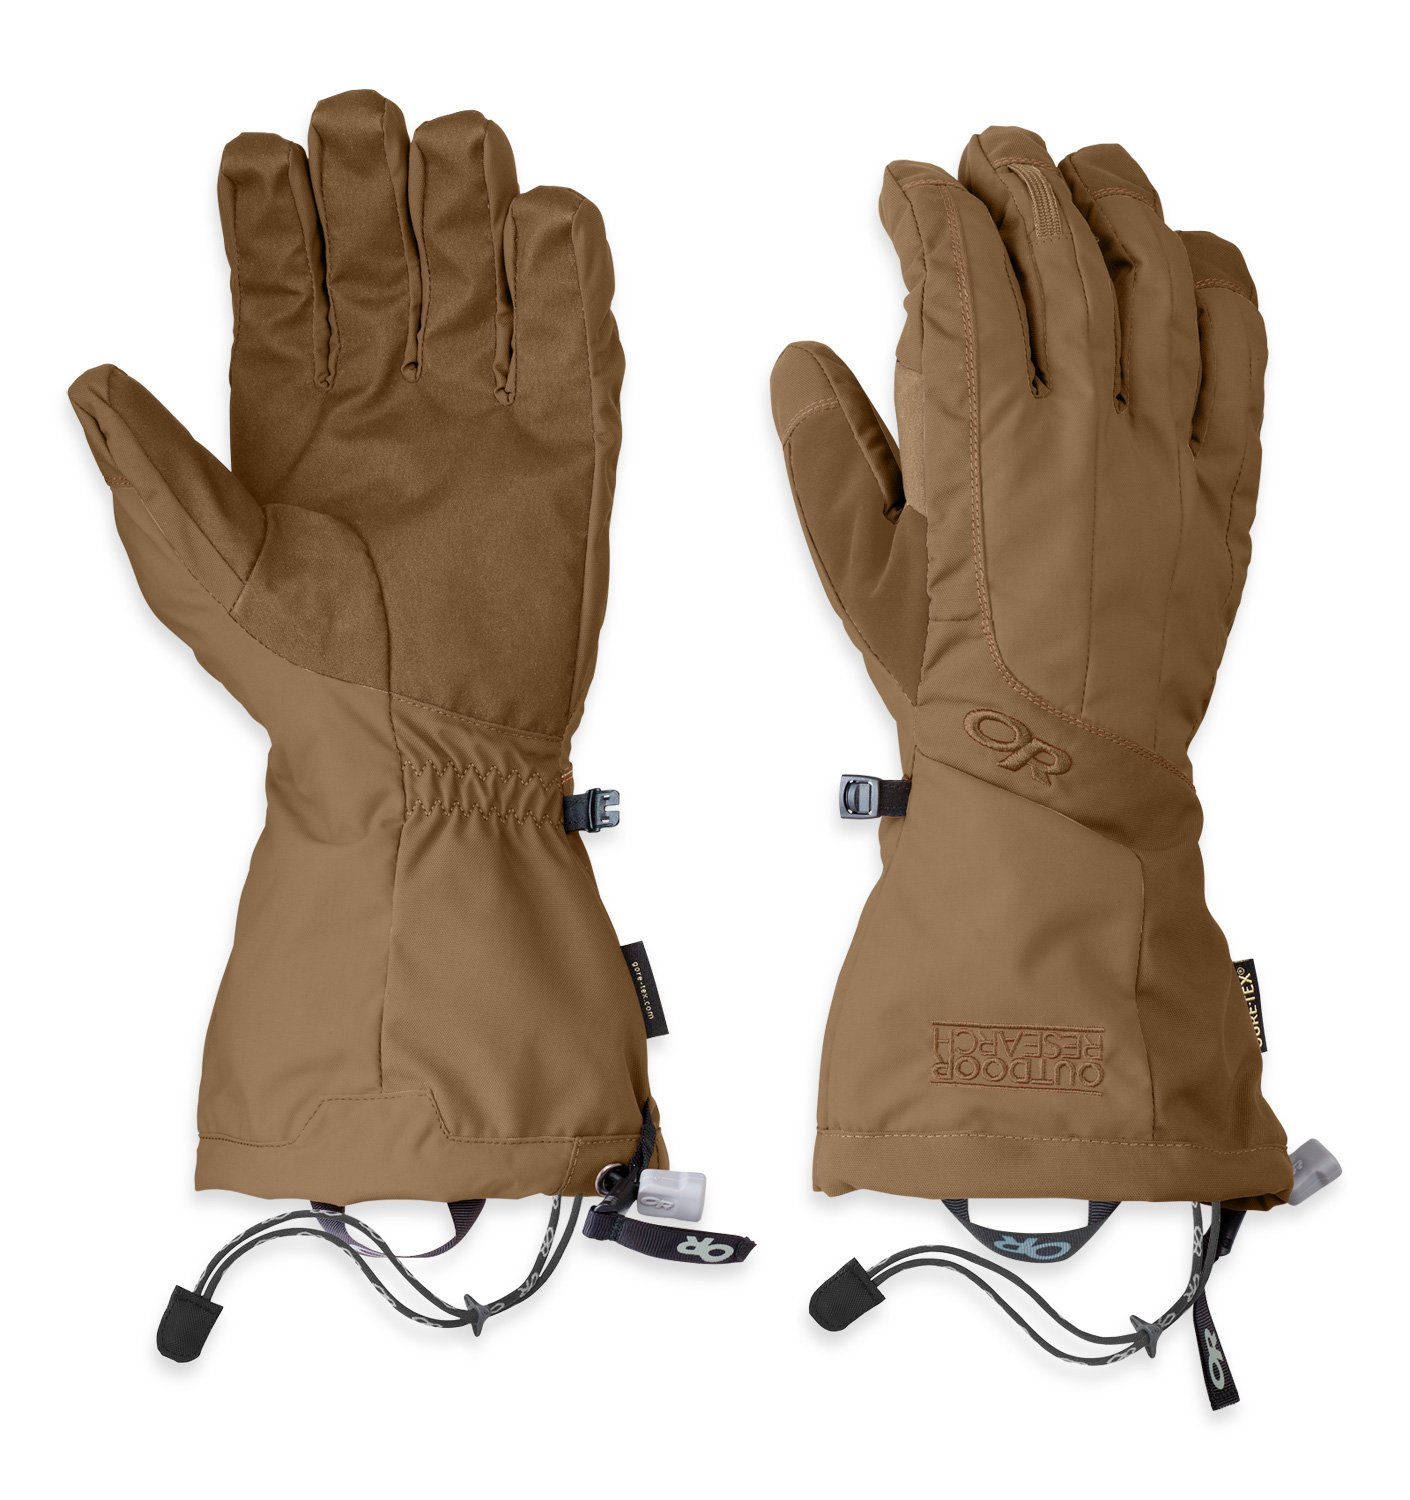 Outdoor Research Men's Arete Gloves, Coyote, X-Large by Outdoor Research